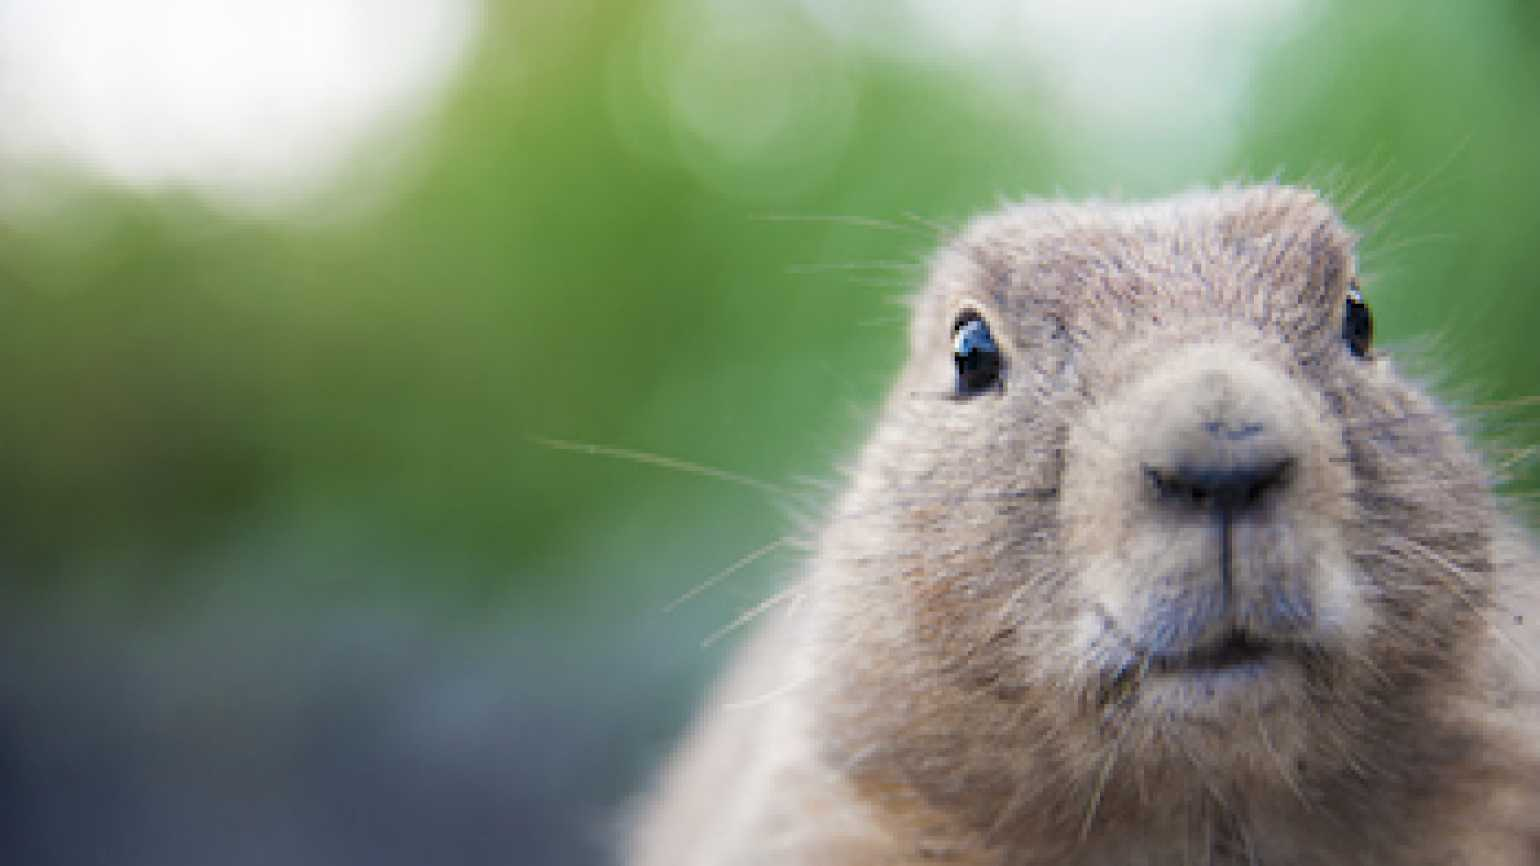 A groundhog. Photo by Ingevd Meeberg, Thinkstock.